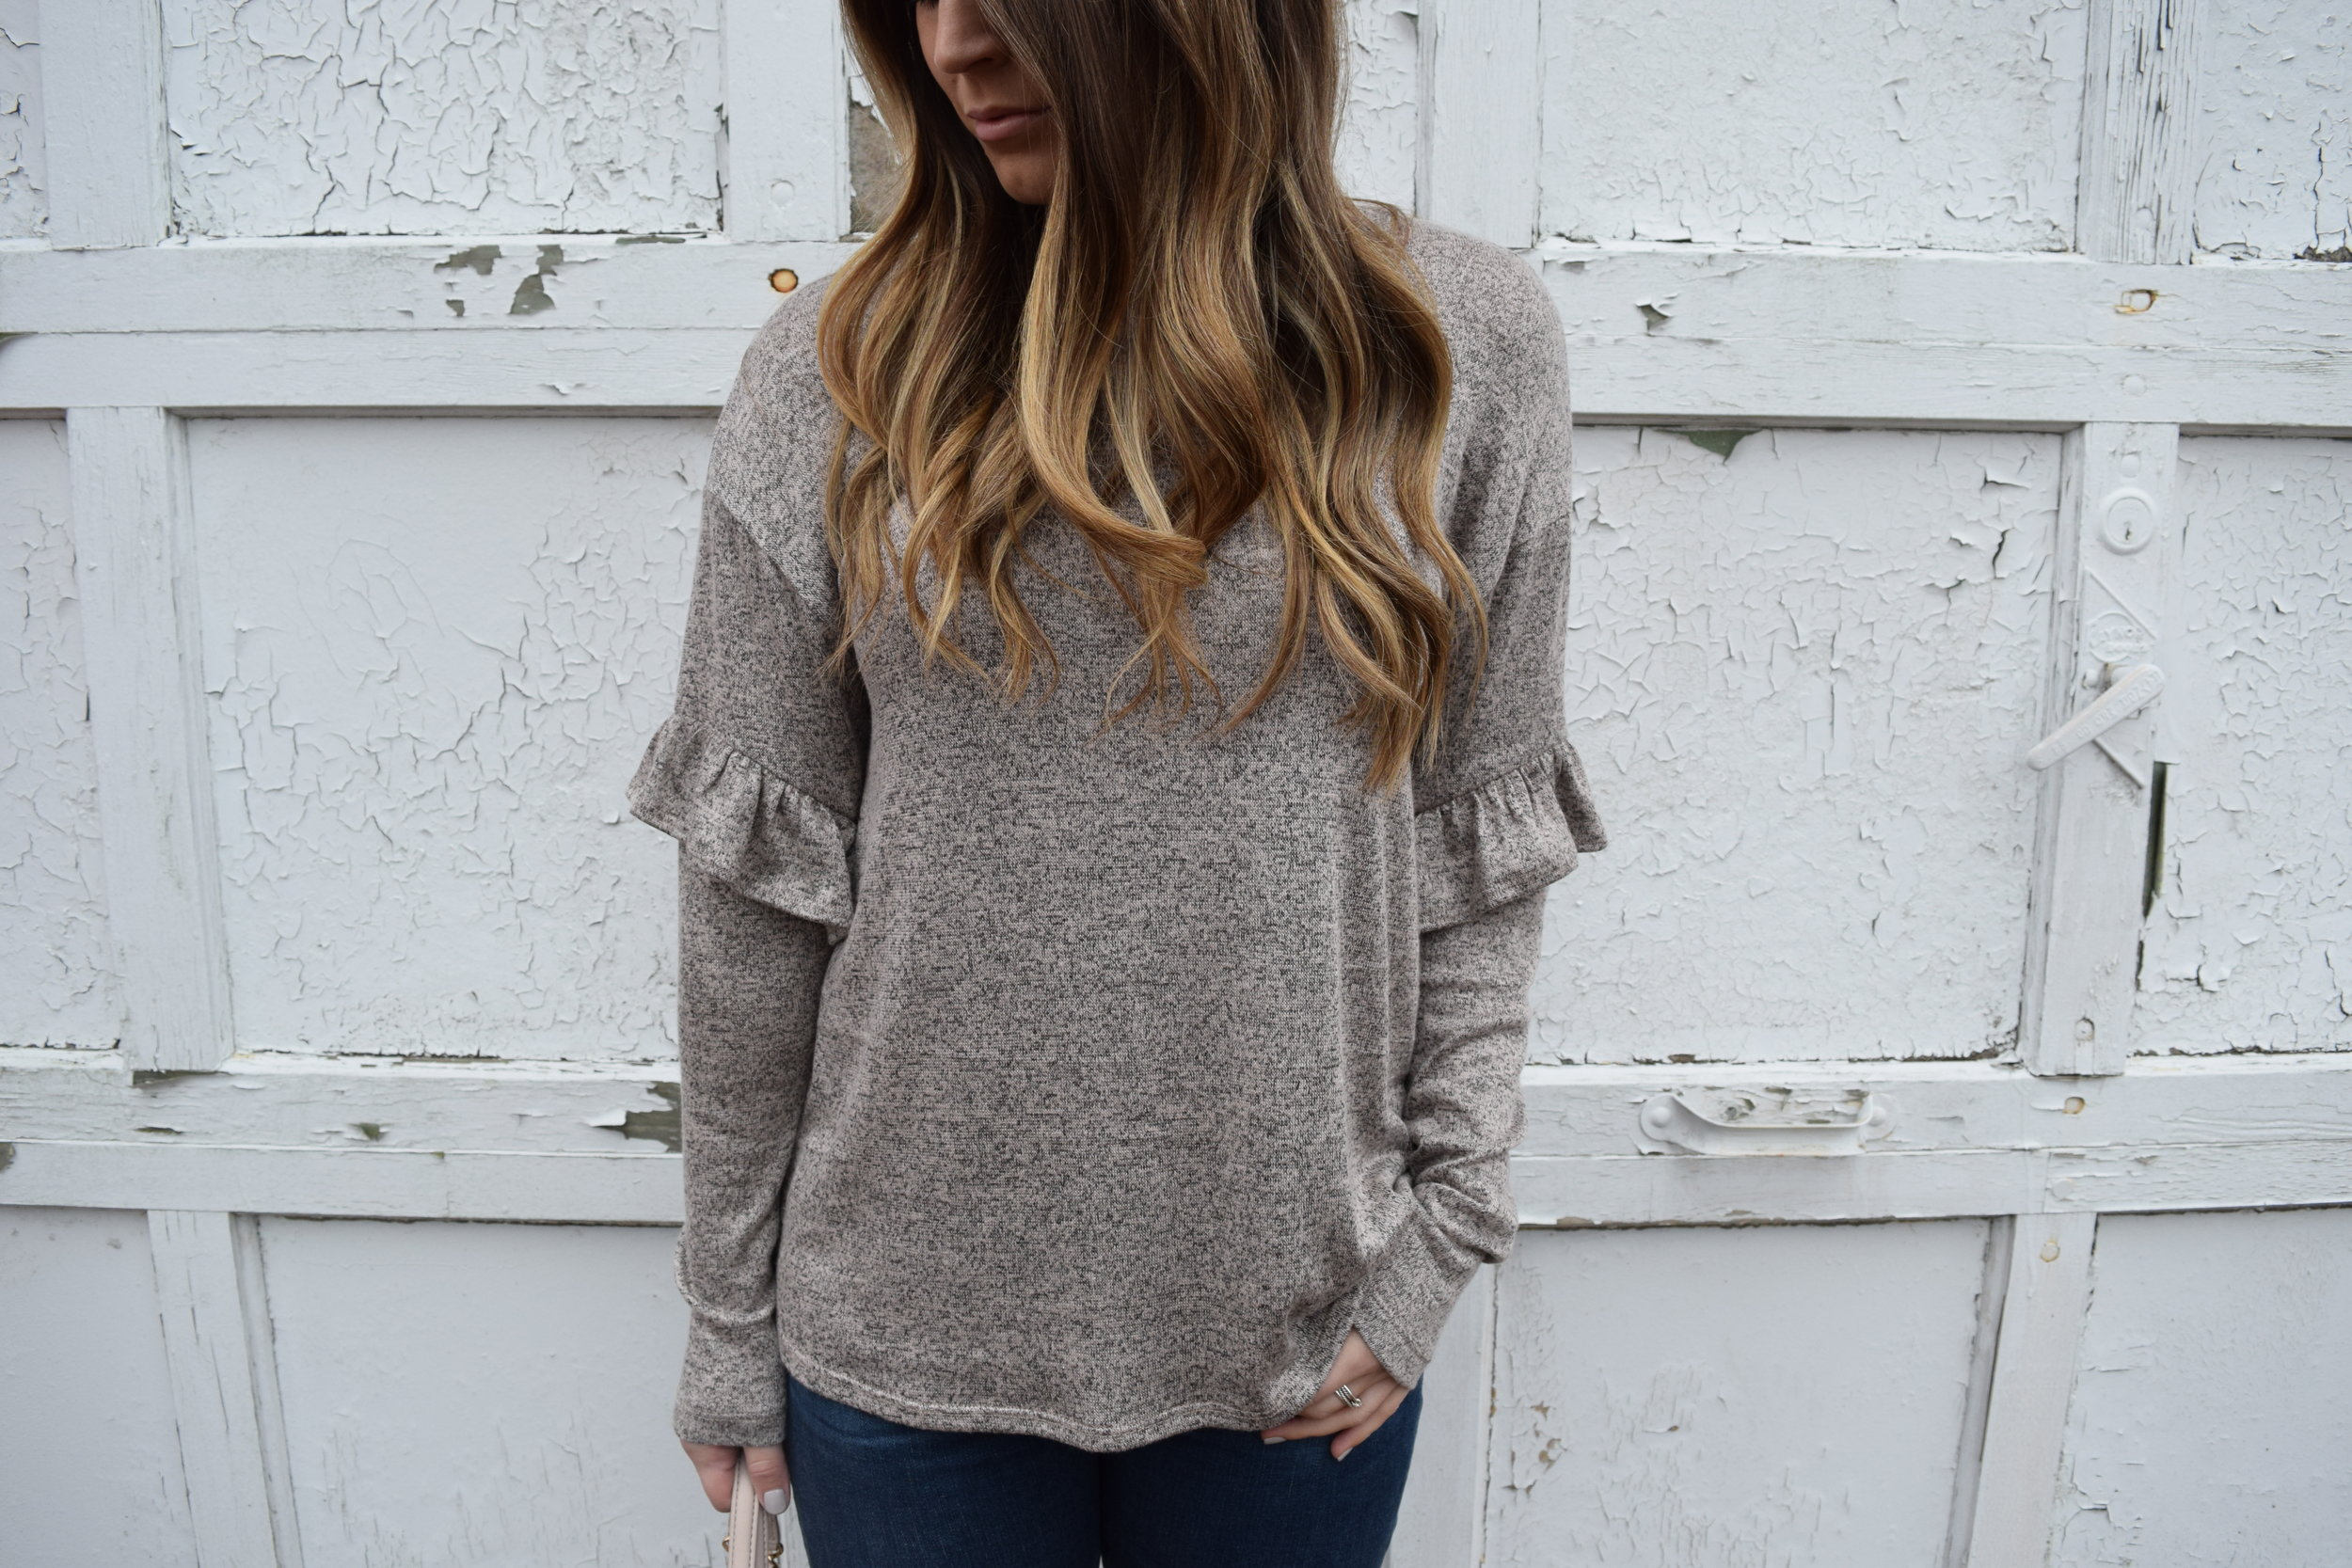 ruffle sleeve top for the spring transition